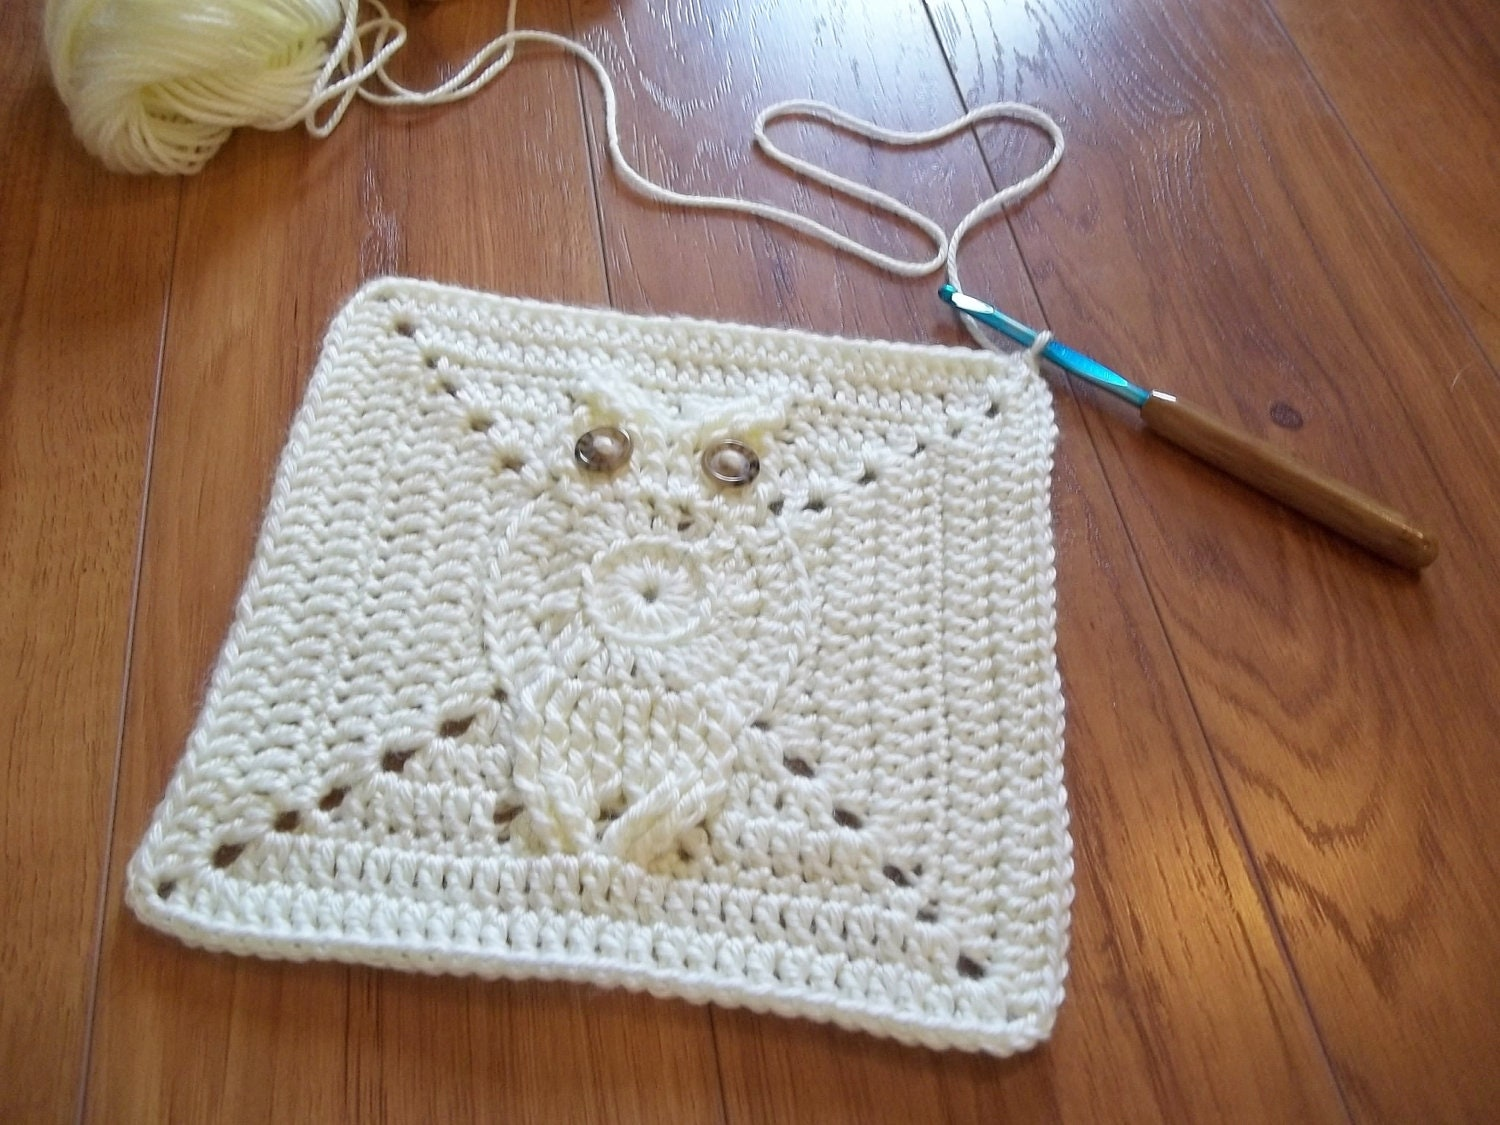 Free Crochet Pattern For Owl Afghan : Its a Hoot Owl Afghan Square Crochet Pattern. Make a baby